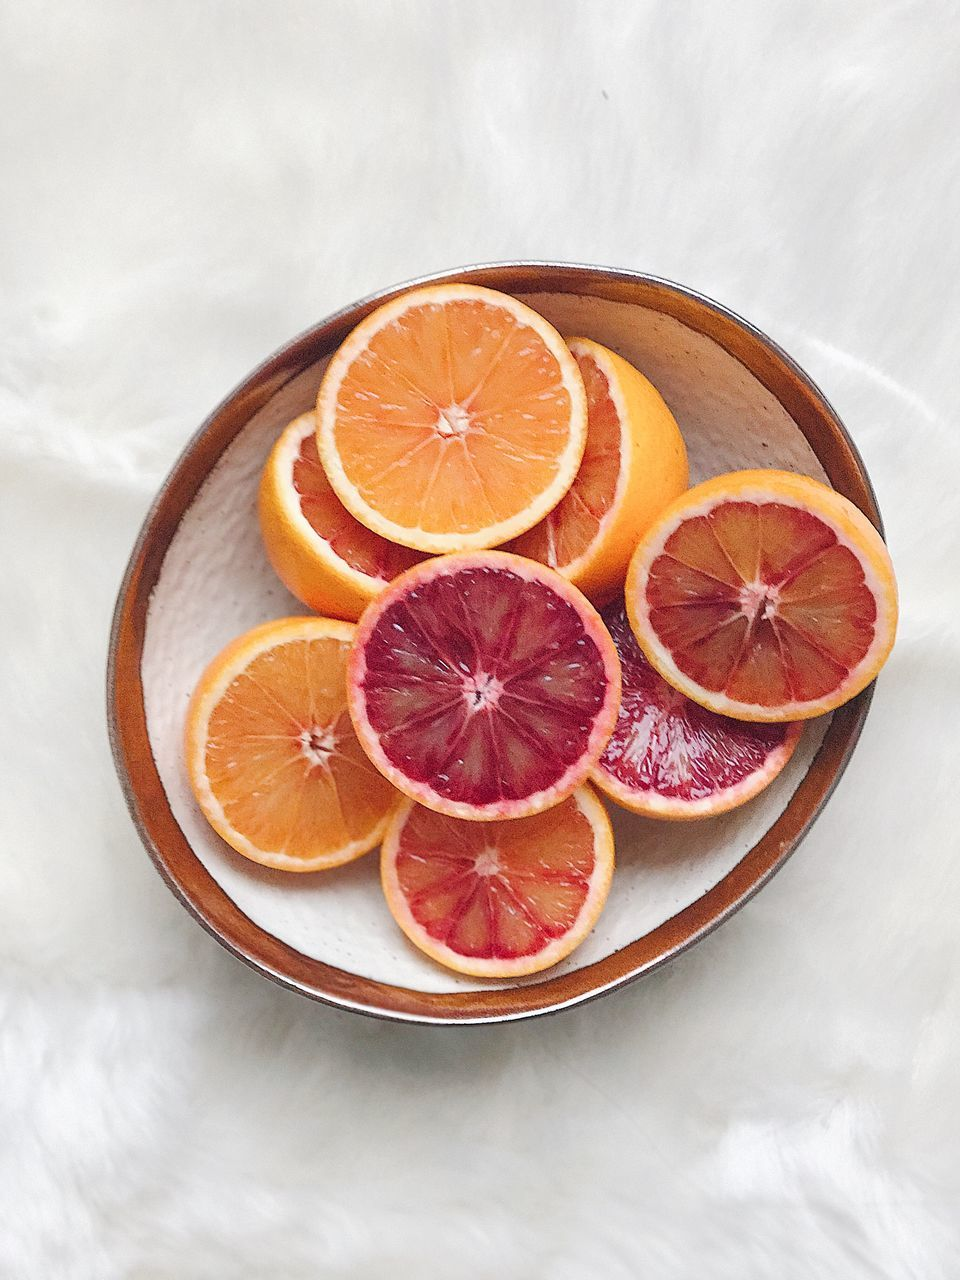 High Angle View Of Citrus Fruit Slices In Plate